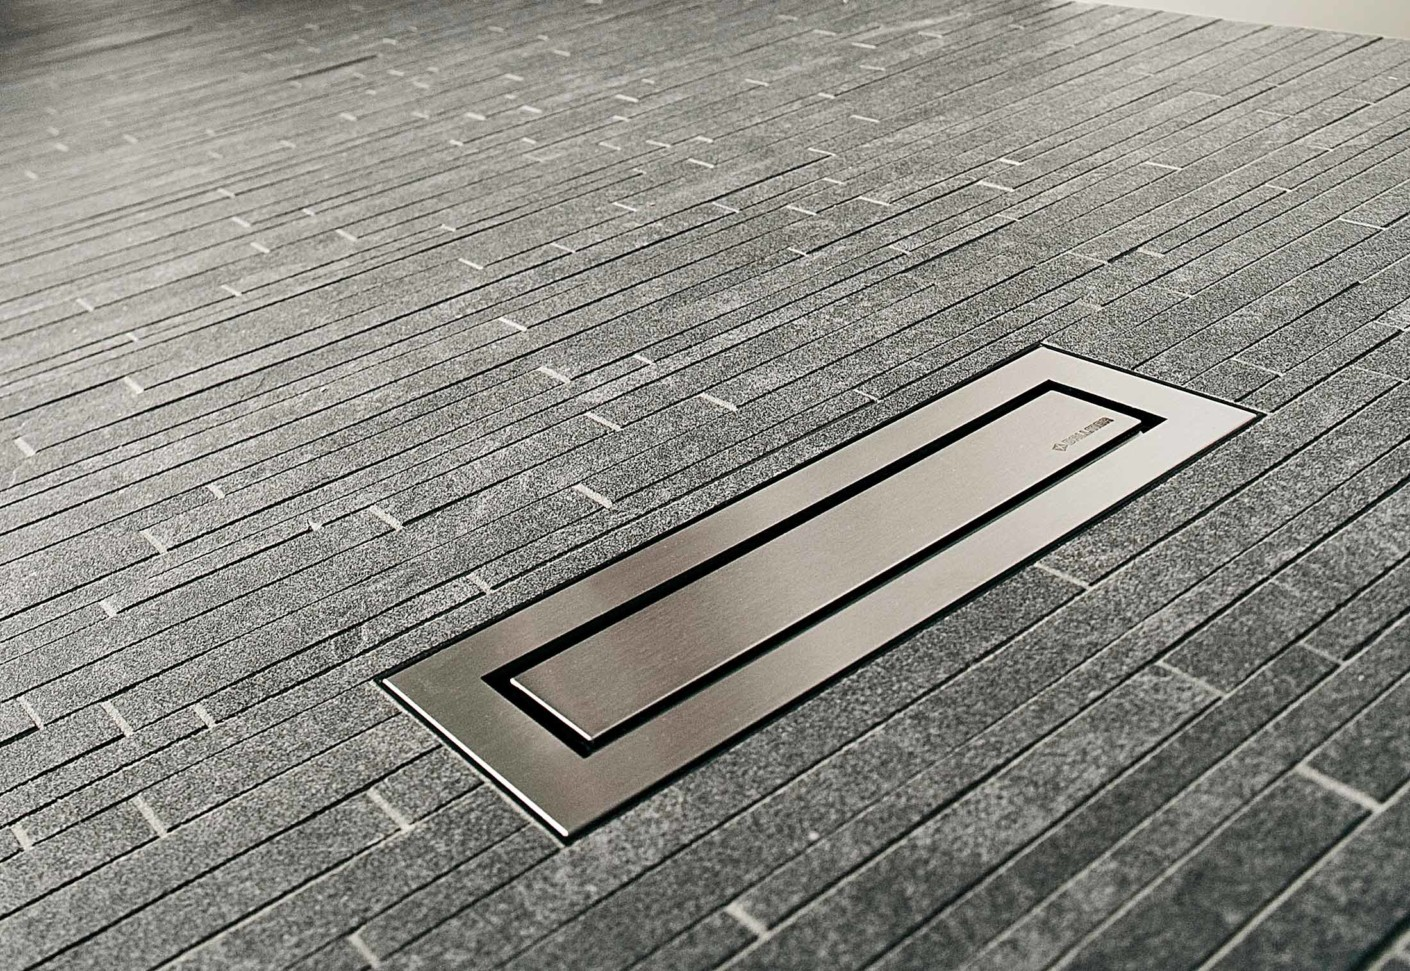 Bathroom Floor Drain : Linear floor drain ceraniveau by dallmer stylepark